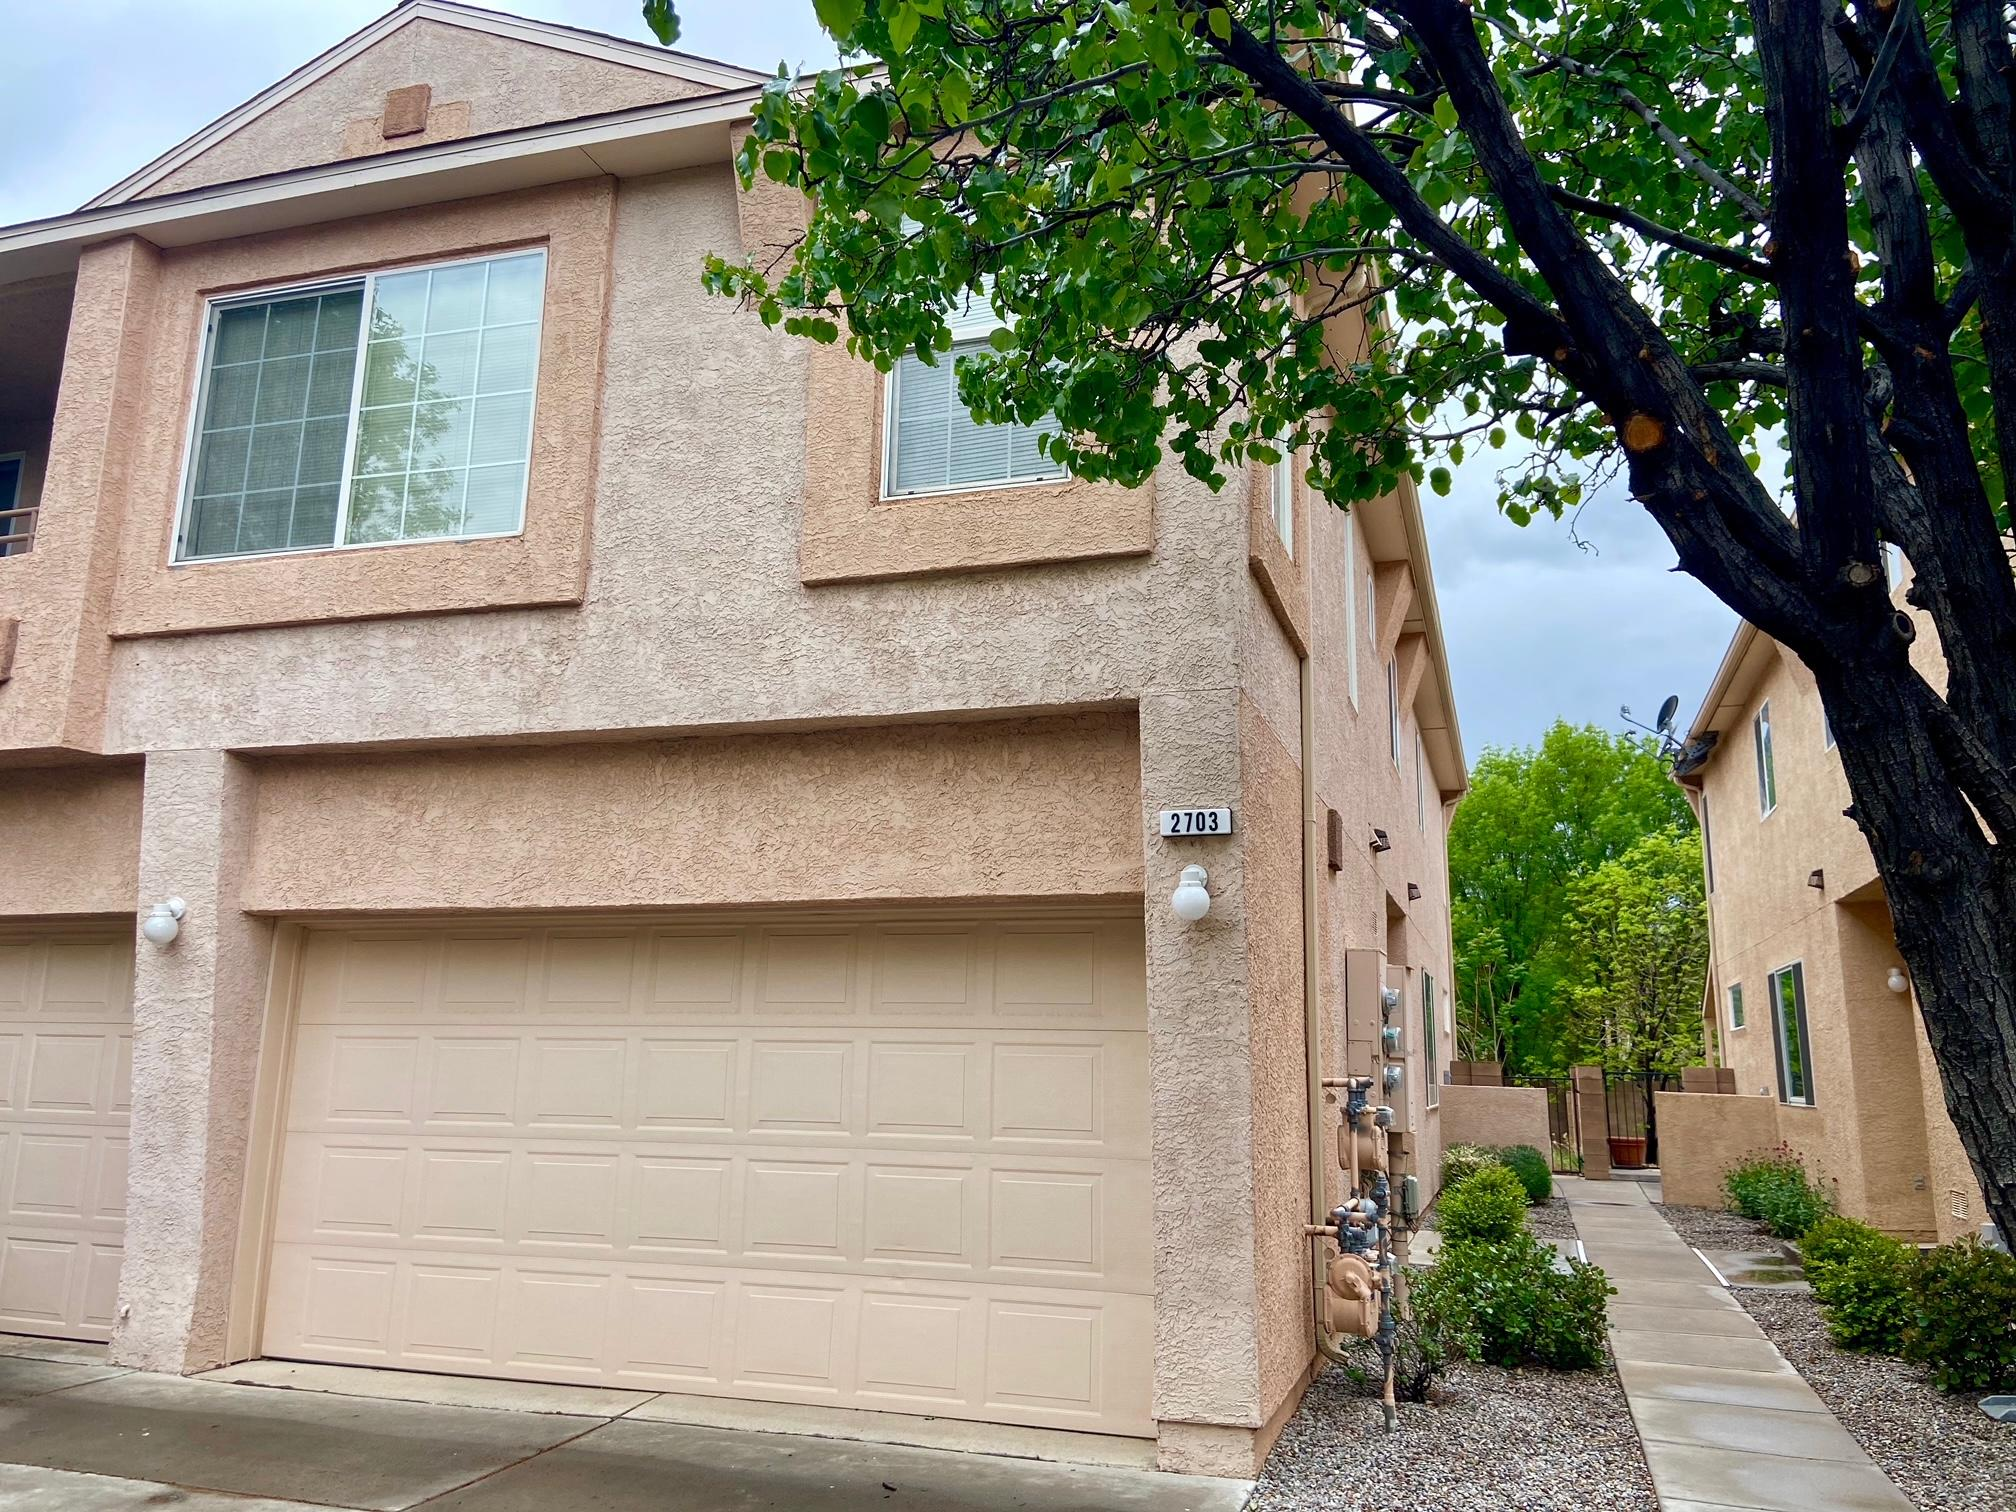 Gated community in convenient NE Heights location. 2 car garage! Such a great floor plan. Living room with fireplace is on the main floor. Bright cheerful kitchen, island, breakfast nook and patio door leading to nice small yard. 2 bedrooms with loft upstairs. Beautiful community pool. HOA Covers Exterior of residence (roof and stucco), common area, pool, and gate